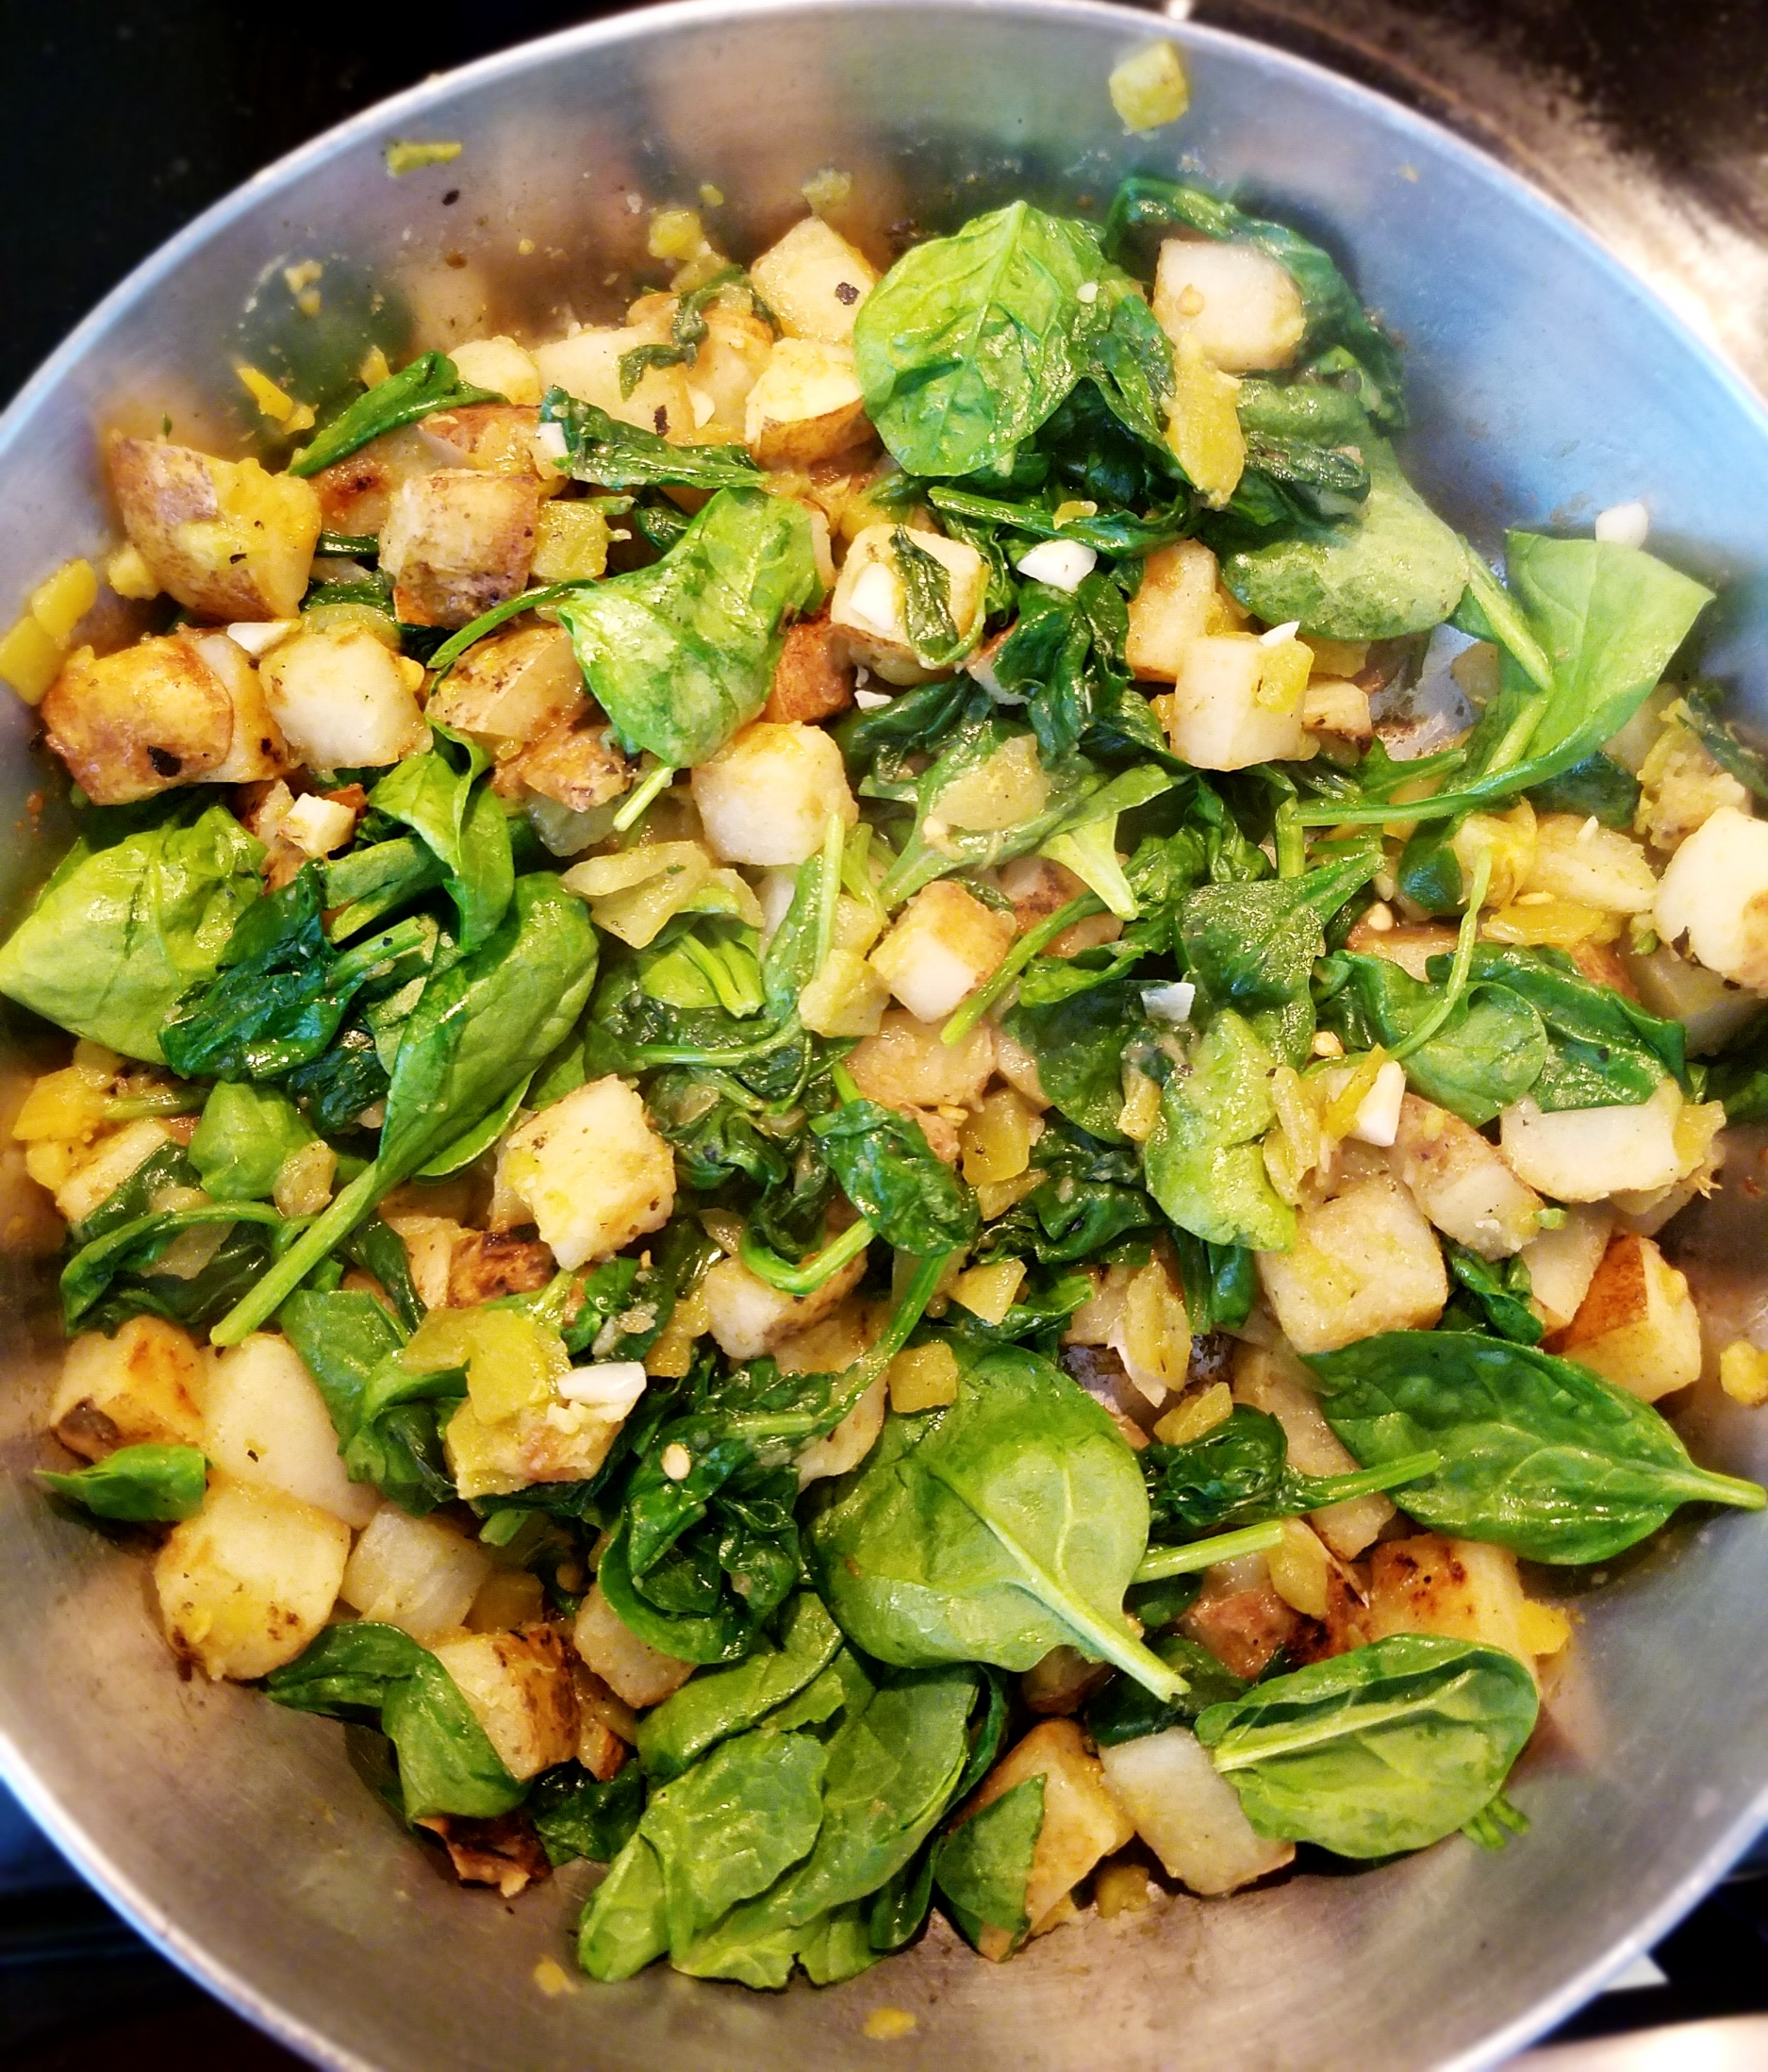 Fried Potatoes with Green Chiles and Spinach